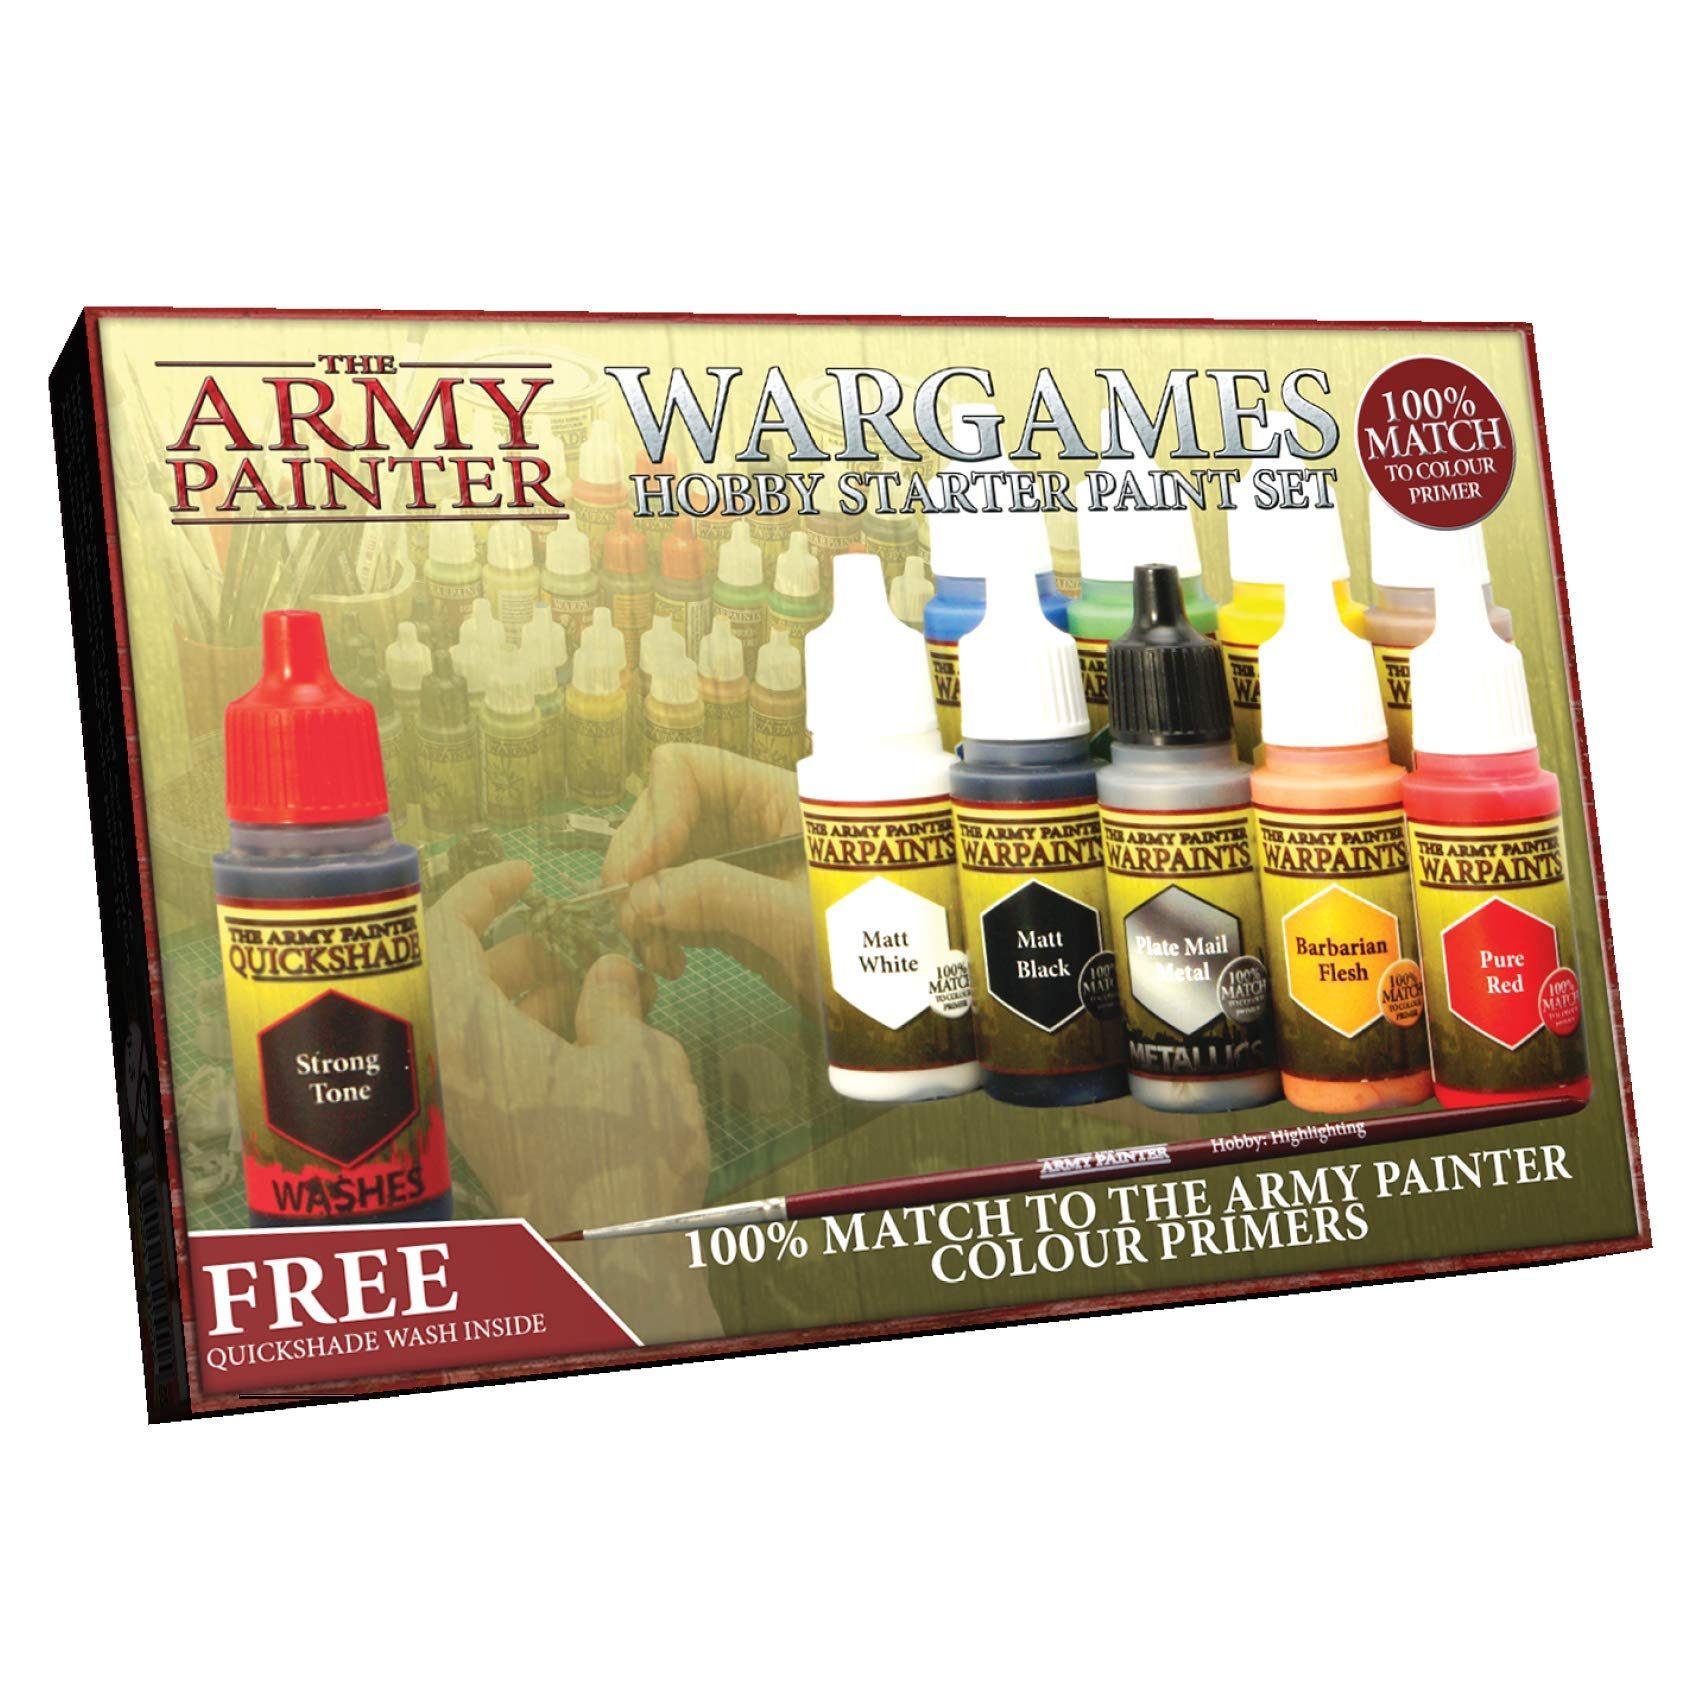 Miniatures Paint Set, 10 Model Paints with FREE Highlighting Brush, 18ml/Bottle, Miniature Painting Kit, Non Toxic Acrylic Paint Set, Wargames Hobby Starter Paint Set by The Army Painter (New Version) by The Army Painter